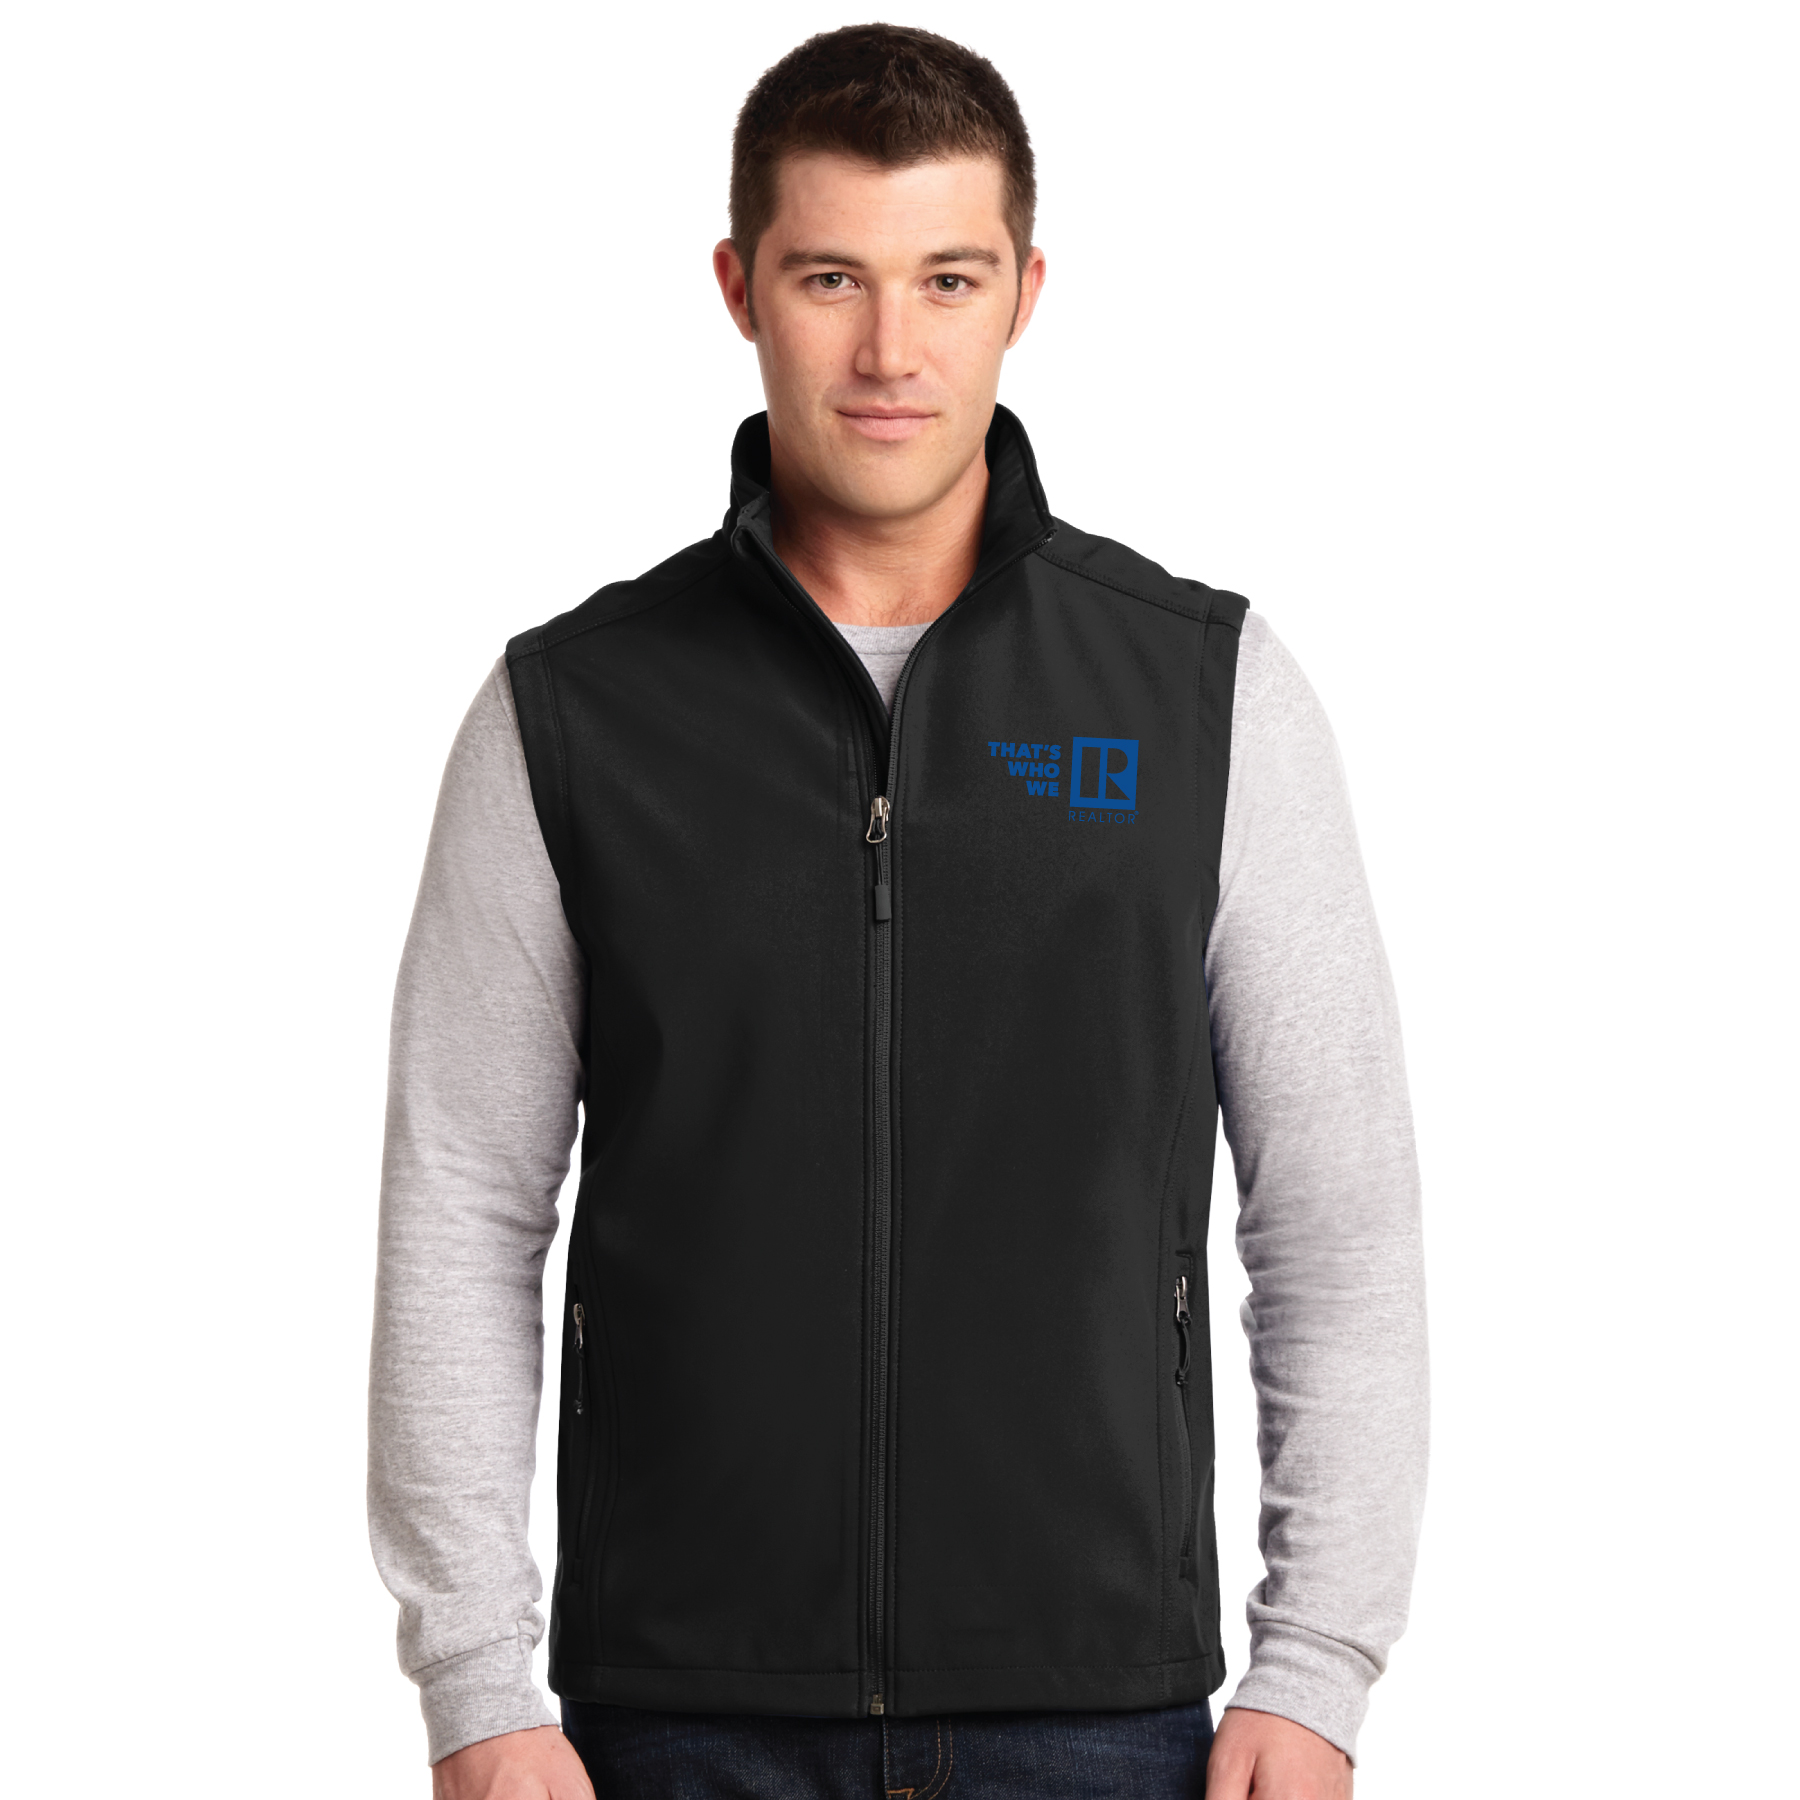 """Thats Who We R"" Mens Core Soft Shell Vest Twwr,Thats,Whos,Wes,Ares,soft, shells, vests, mens"